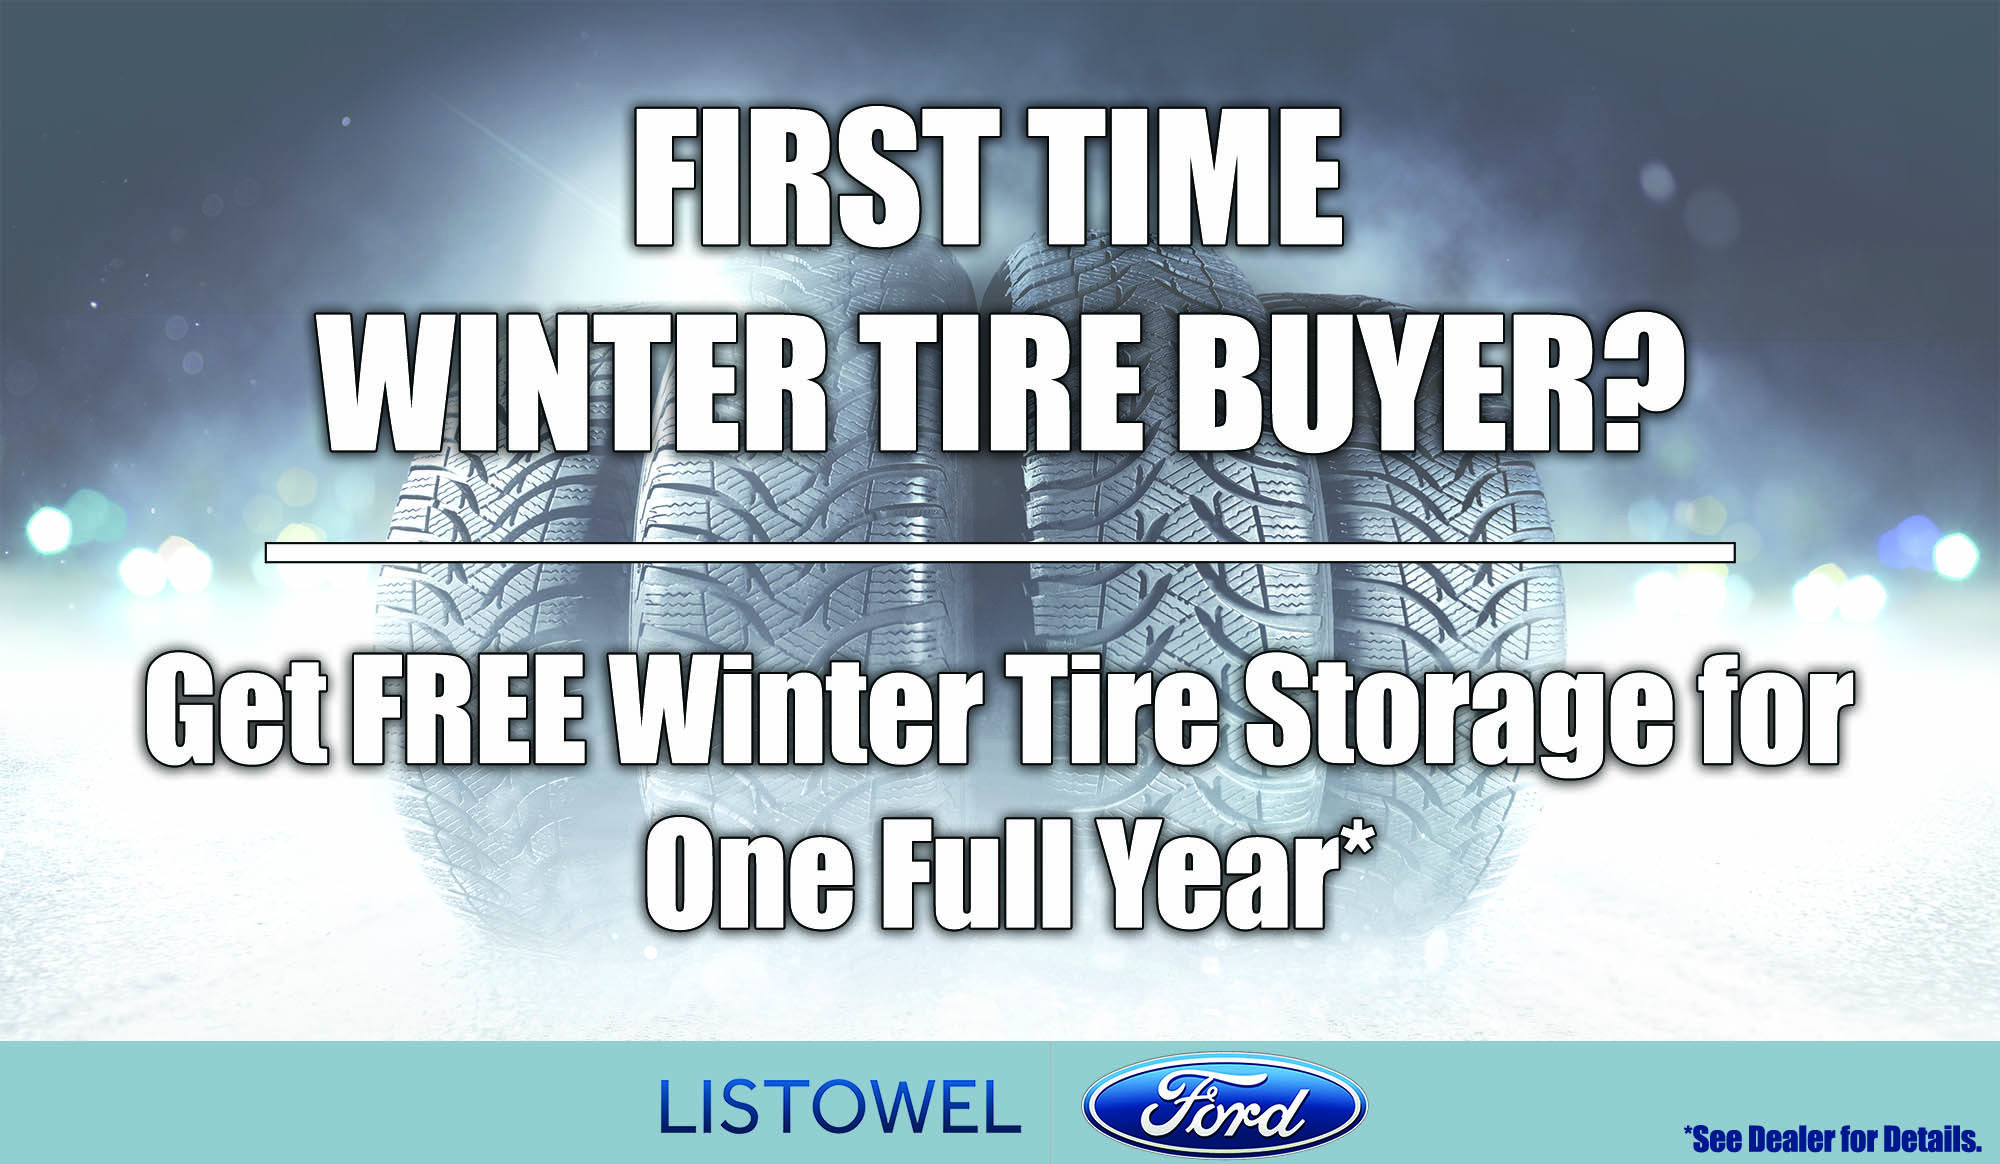 Listowel Ford is excited to offer new customers one full year of free tire storage.